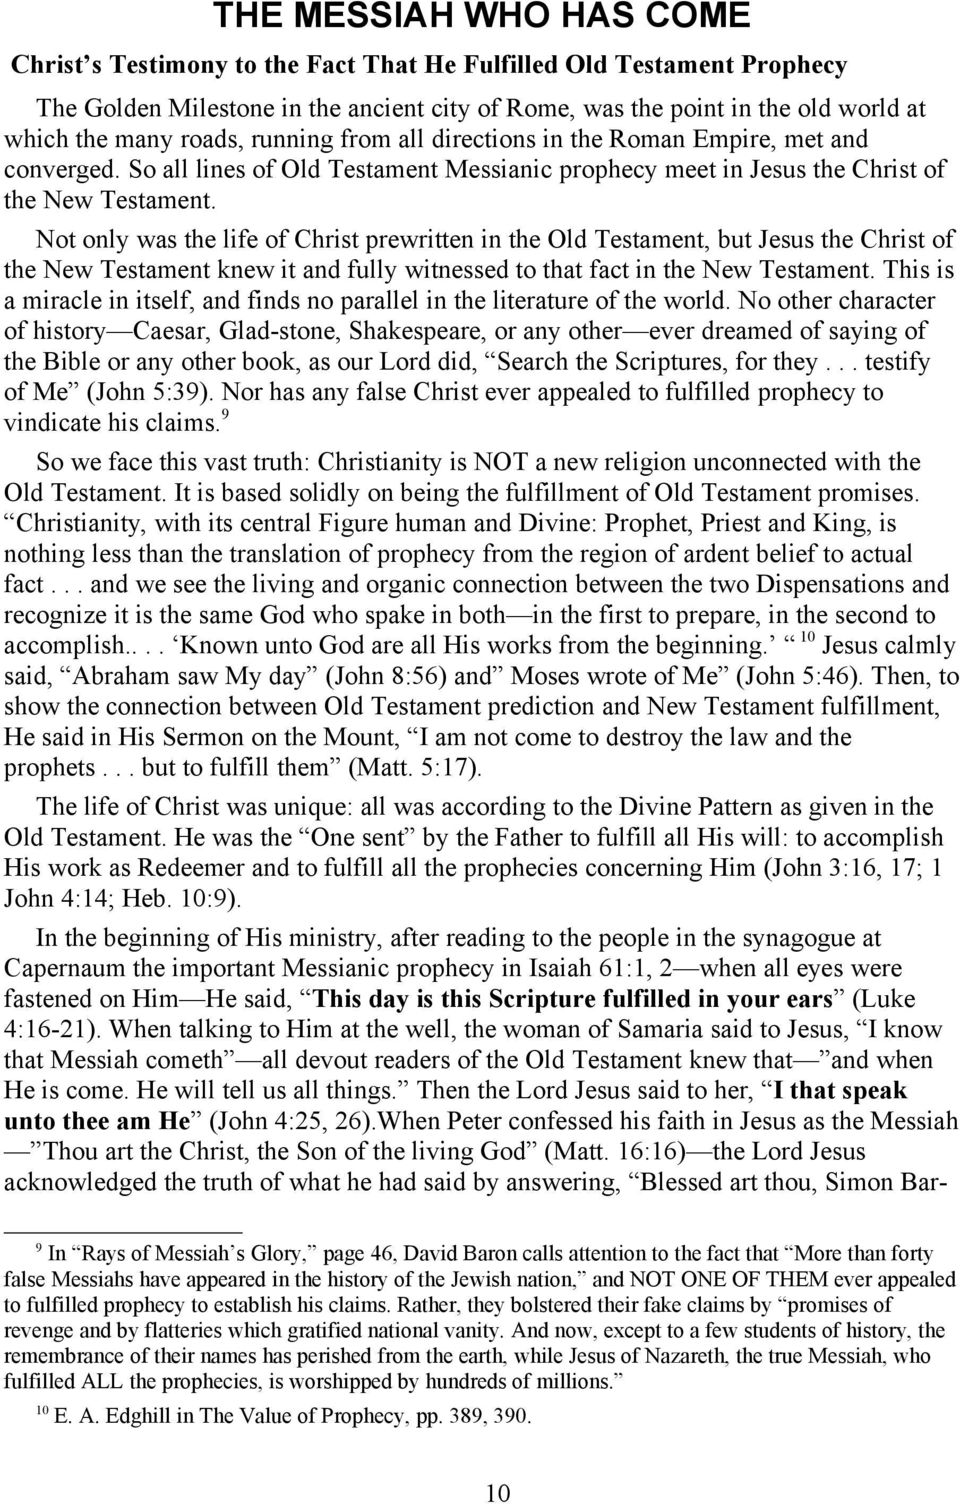 Not only was the life of Christ prewritten in the Old Testament, but Jesus the Christ of the New Testament knew it and fully witnessed to that fact in the New Testament.